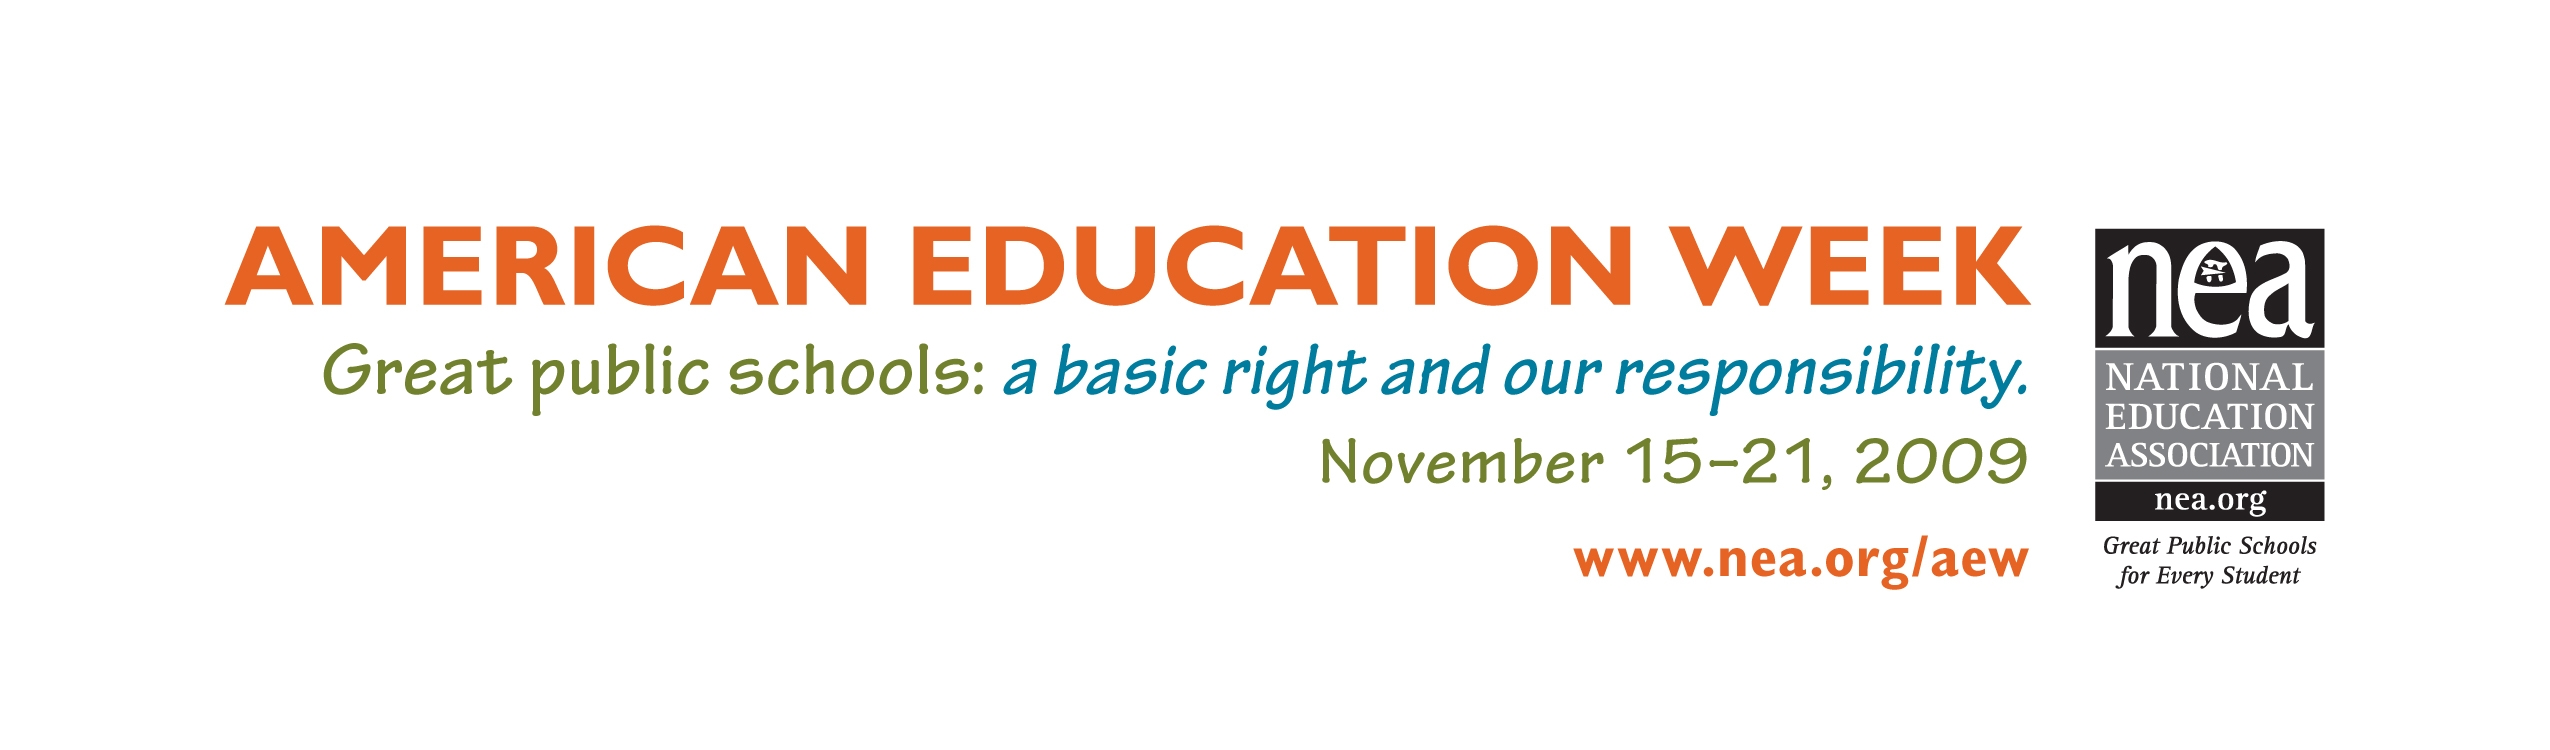 American Education Week--Great Public Schools: a basic right and our responsibility